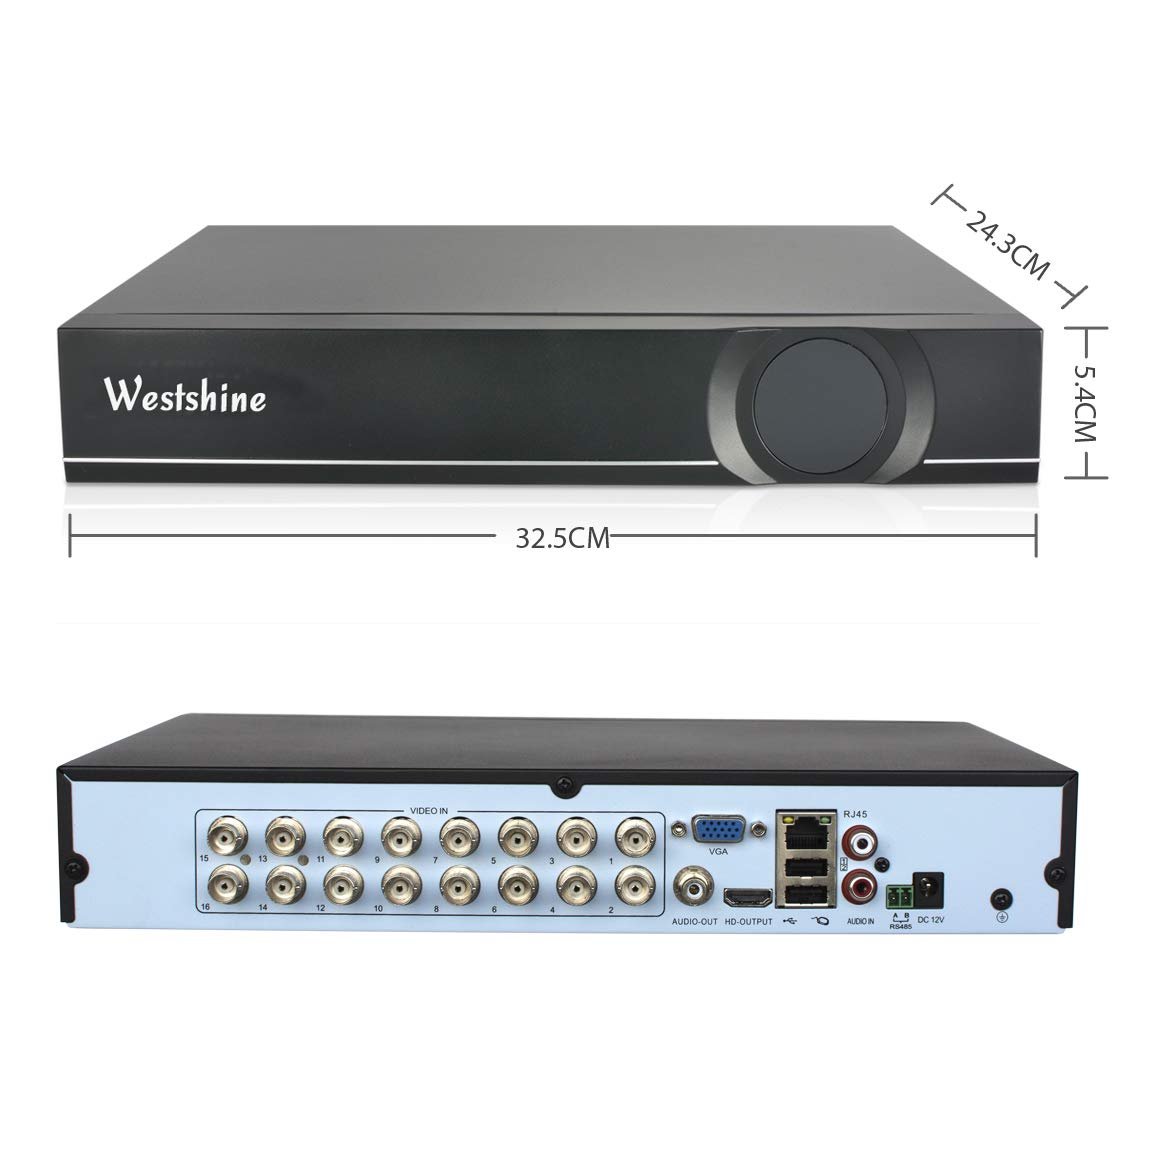 Westshine 16 Channel 1080N DVR,5 in 1 Hybrid (AHD/TVI/CVI/Analog/IP) CCTV Home Security System, H.265 HD Surveillance Digital Video Recorder, Support Onvif Motion Detection, Email Alert(NO HDD) by WESTSHINE